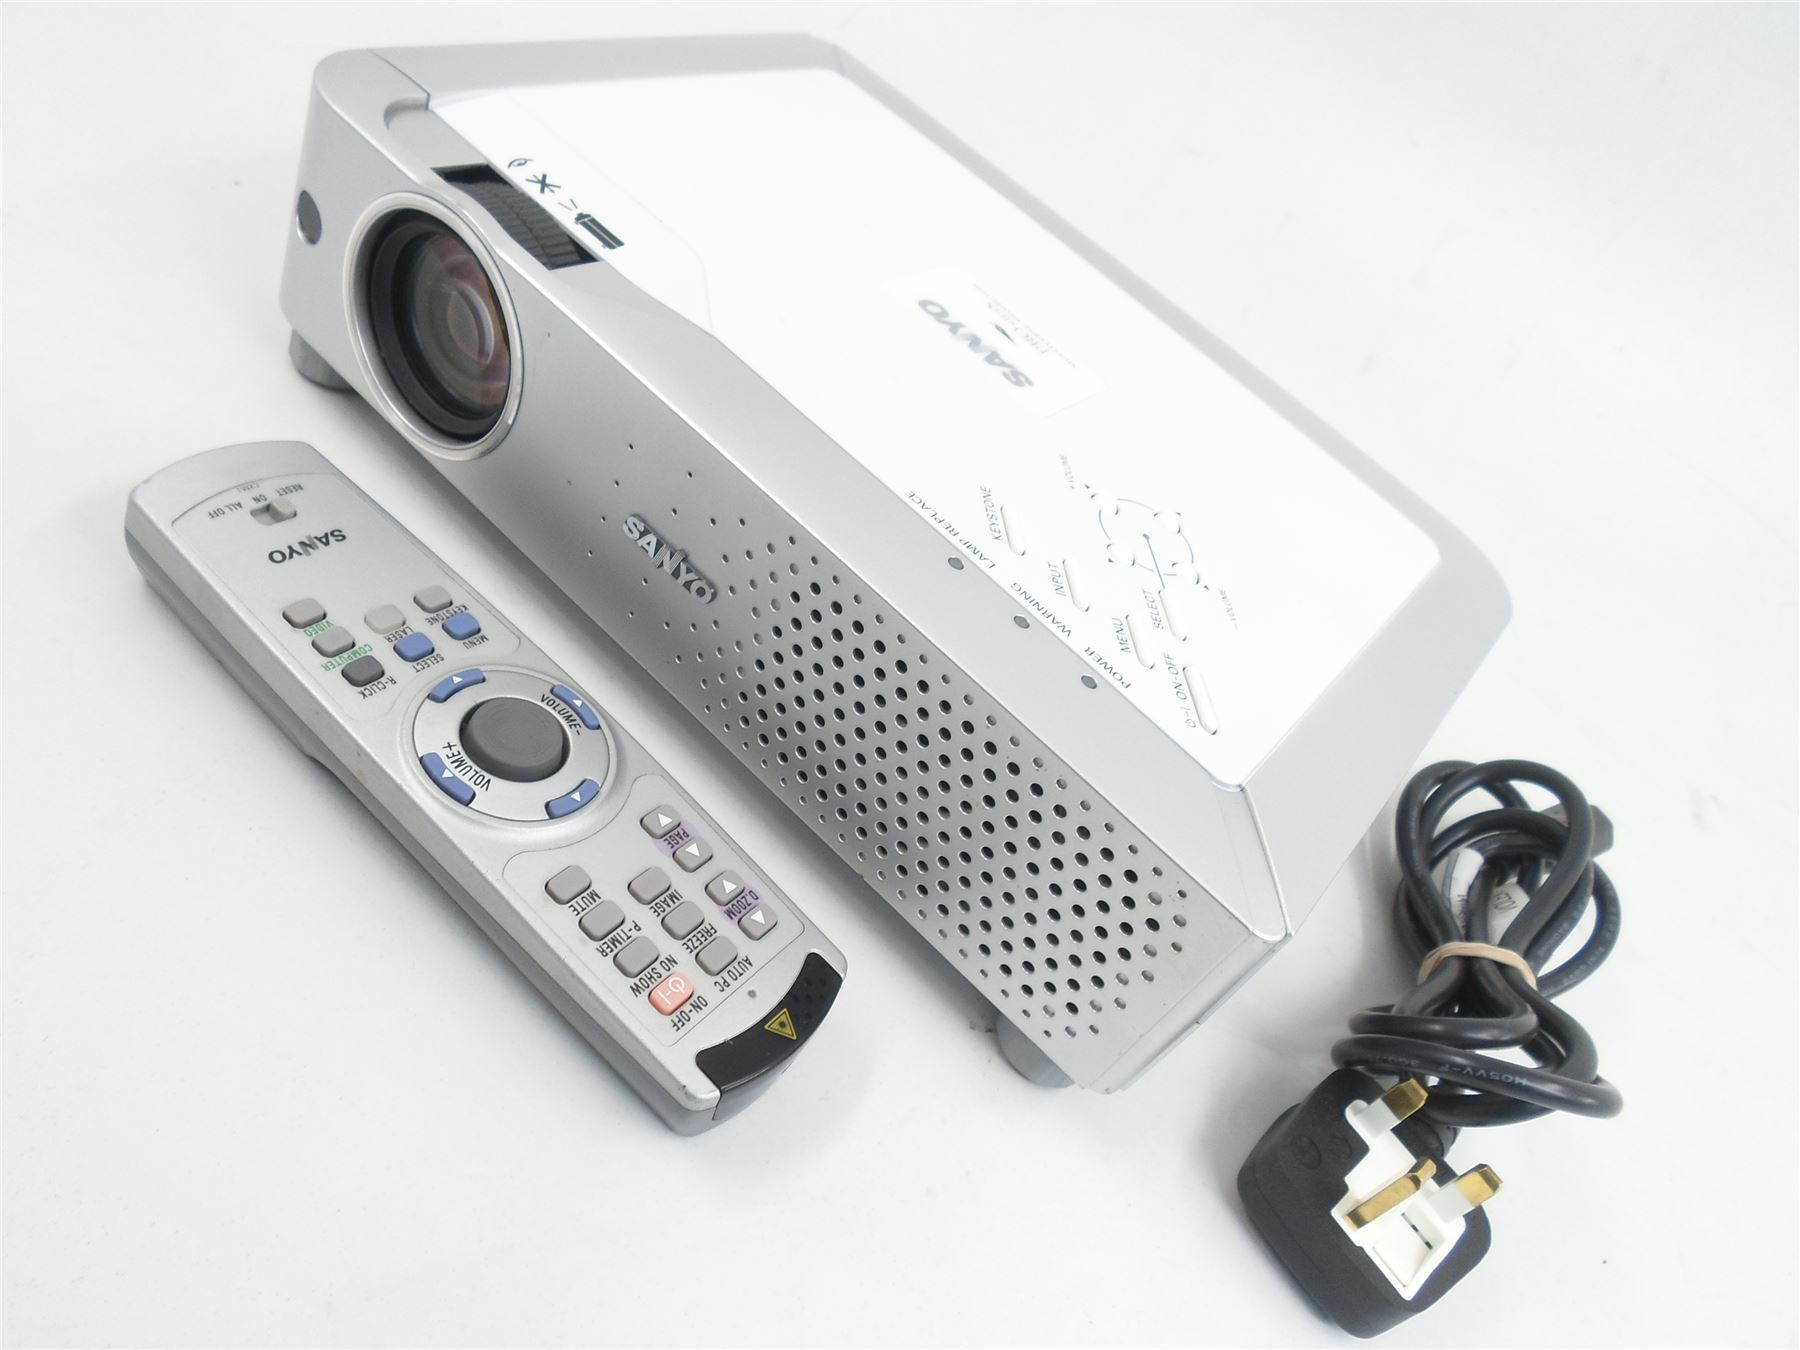 sanyo pro xtrax plc xe30 lcd projector with remote 8467840537523 ebay. Black Bedroom Furniture Sets. Home Design Ideas